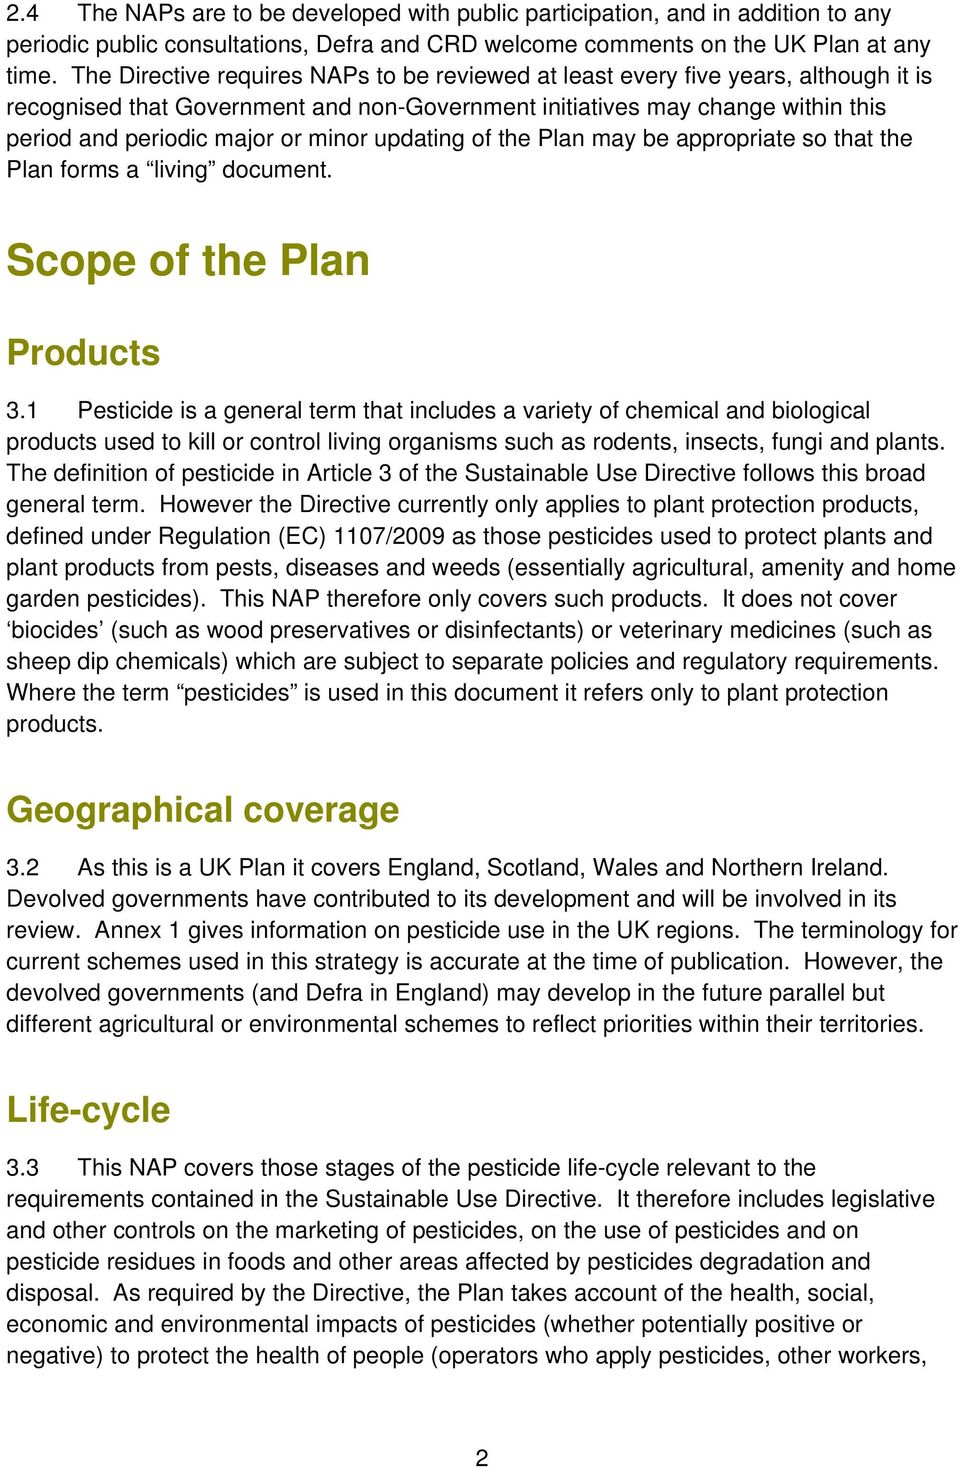 minor updating of the Plan may be appropriate so that the Plan forms a living document. Scope of the Plan Products 3.